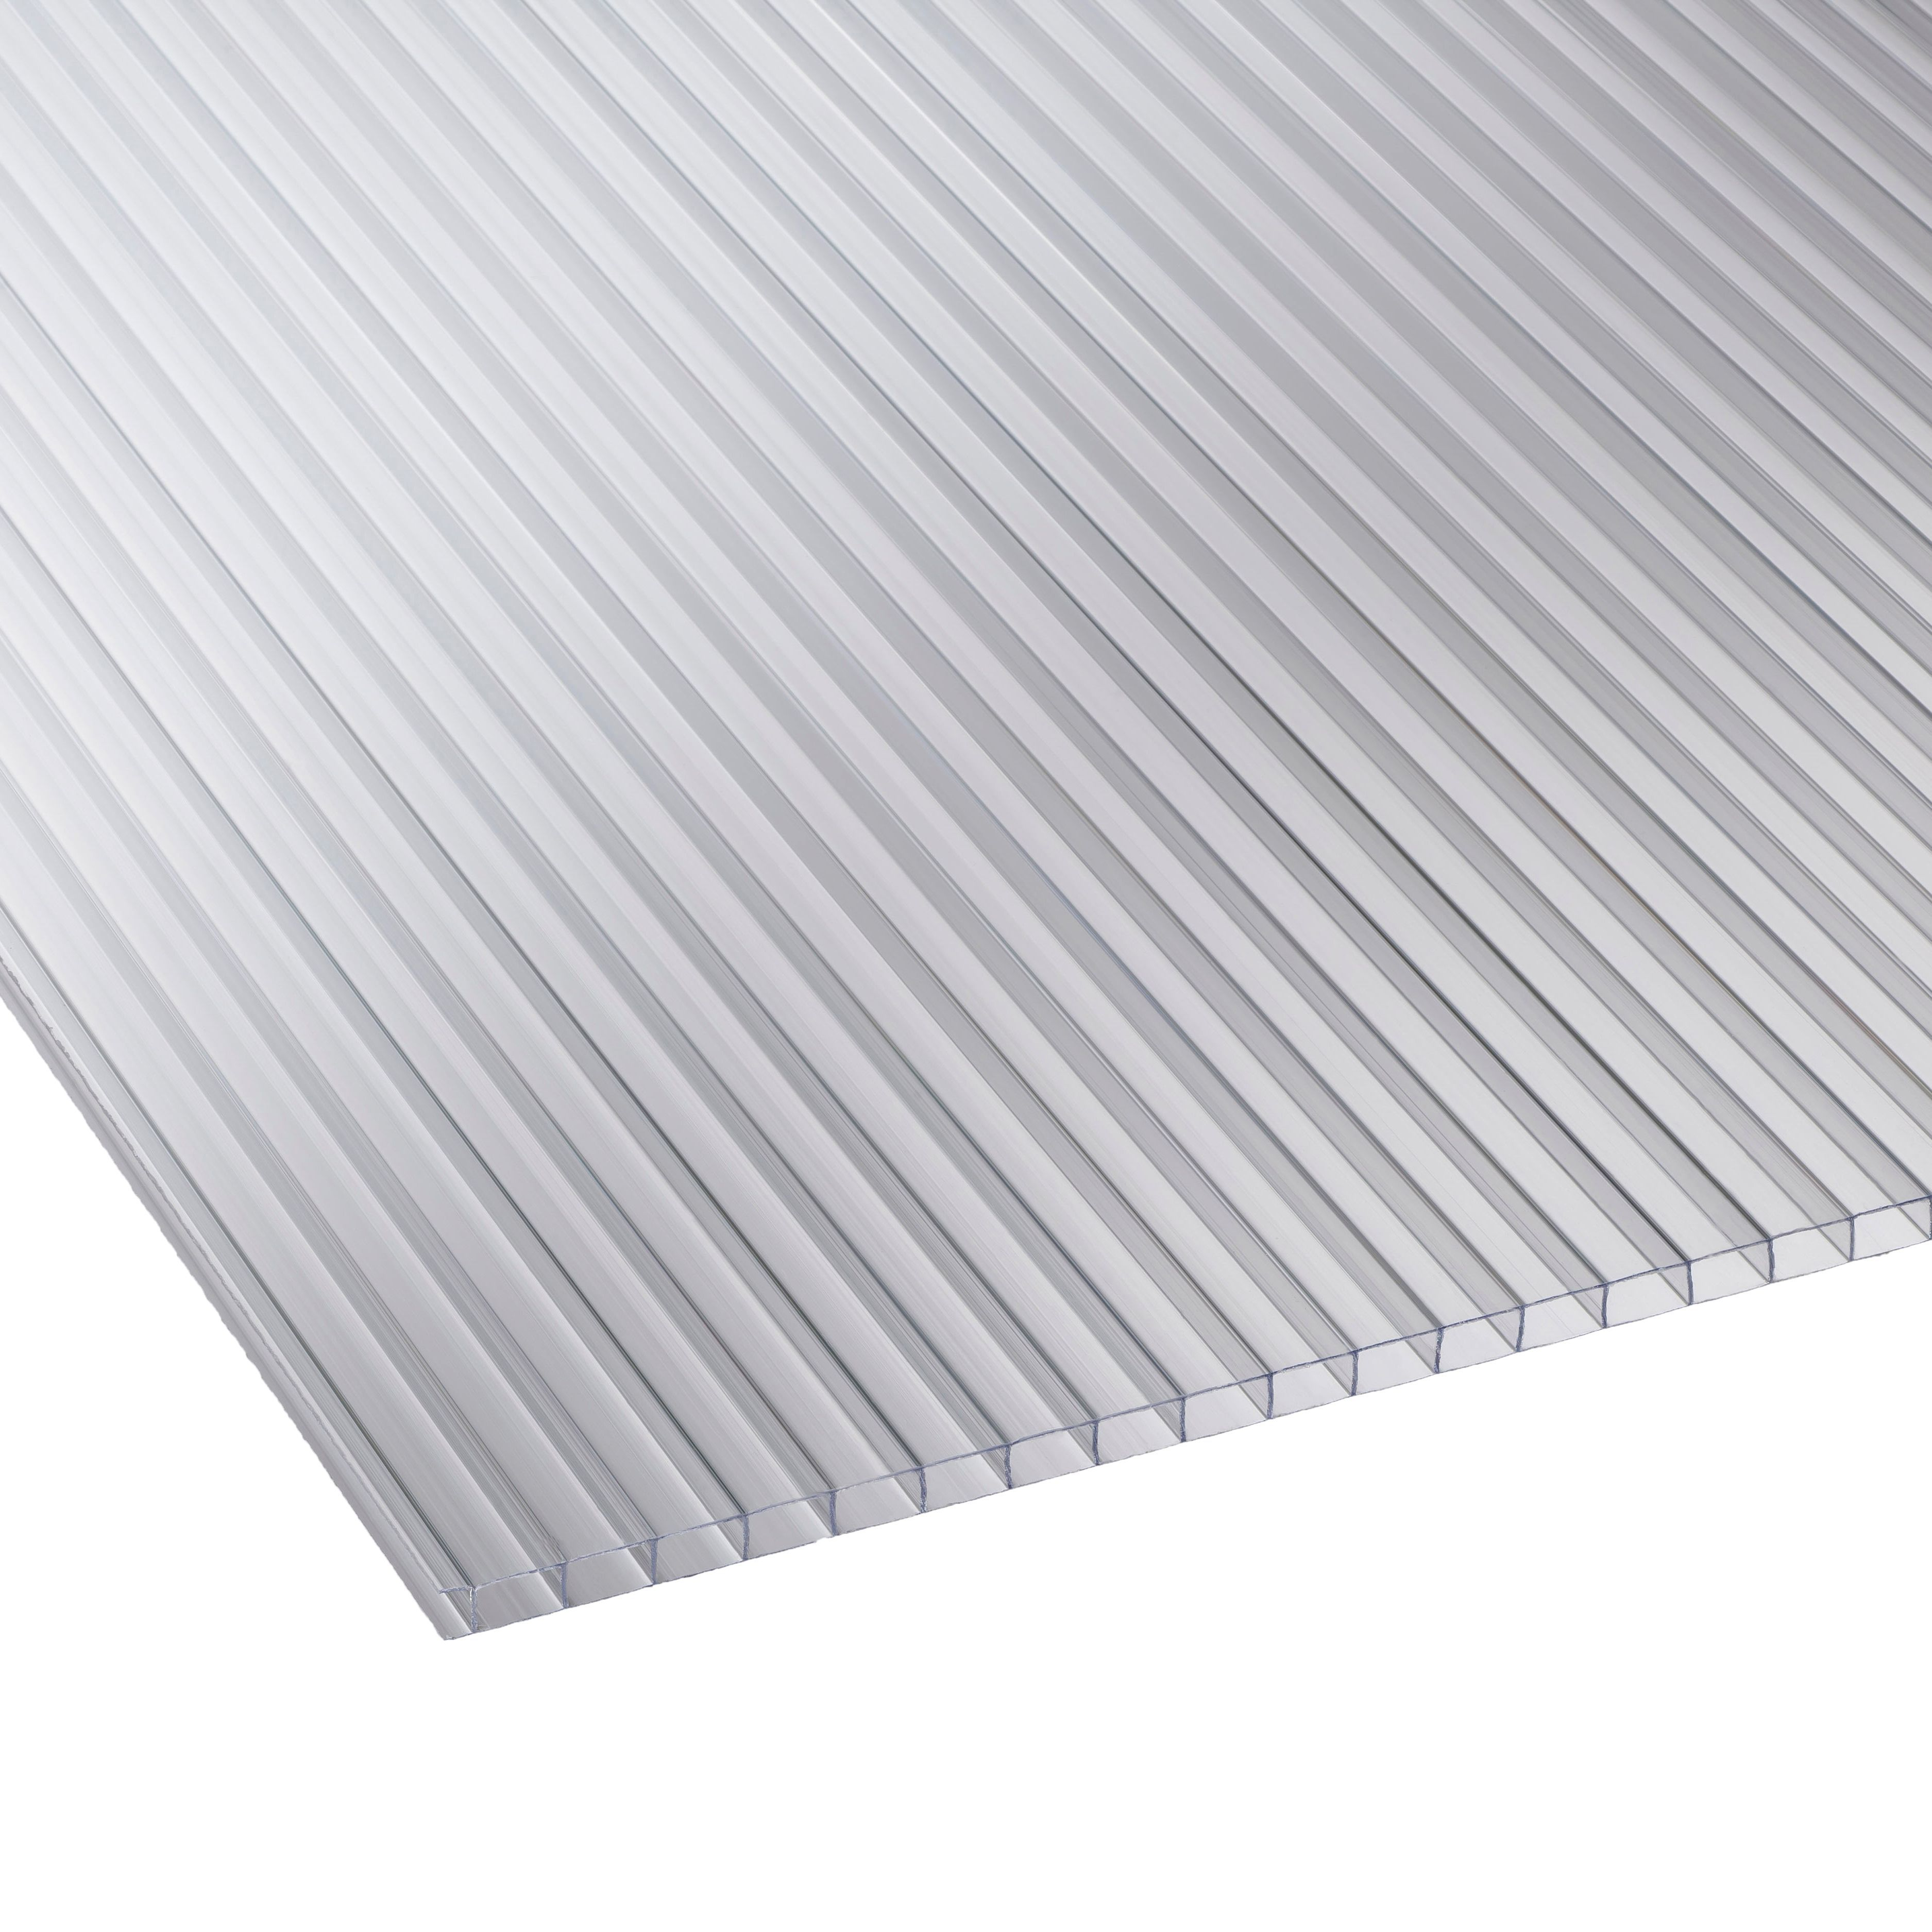 Clear Mutilwall Polycarbonate Horticultural Glazing Sheet 1200mm X 1200mm, Pack Of 10